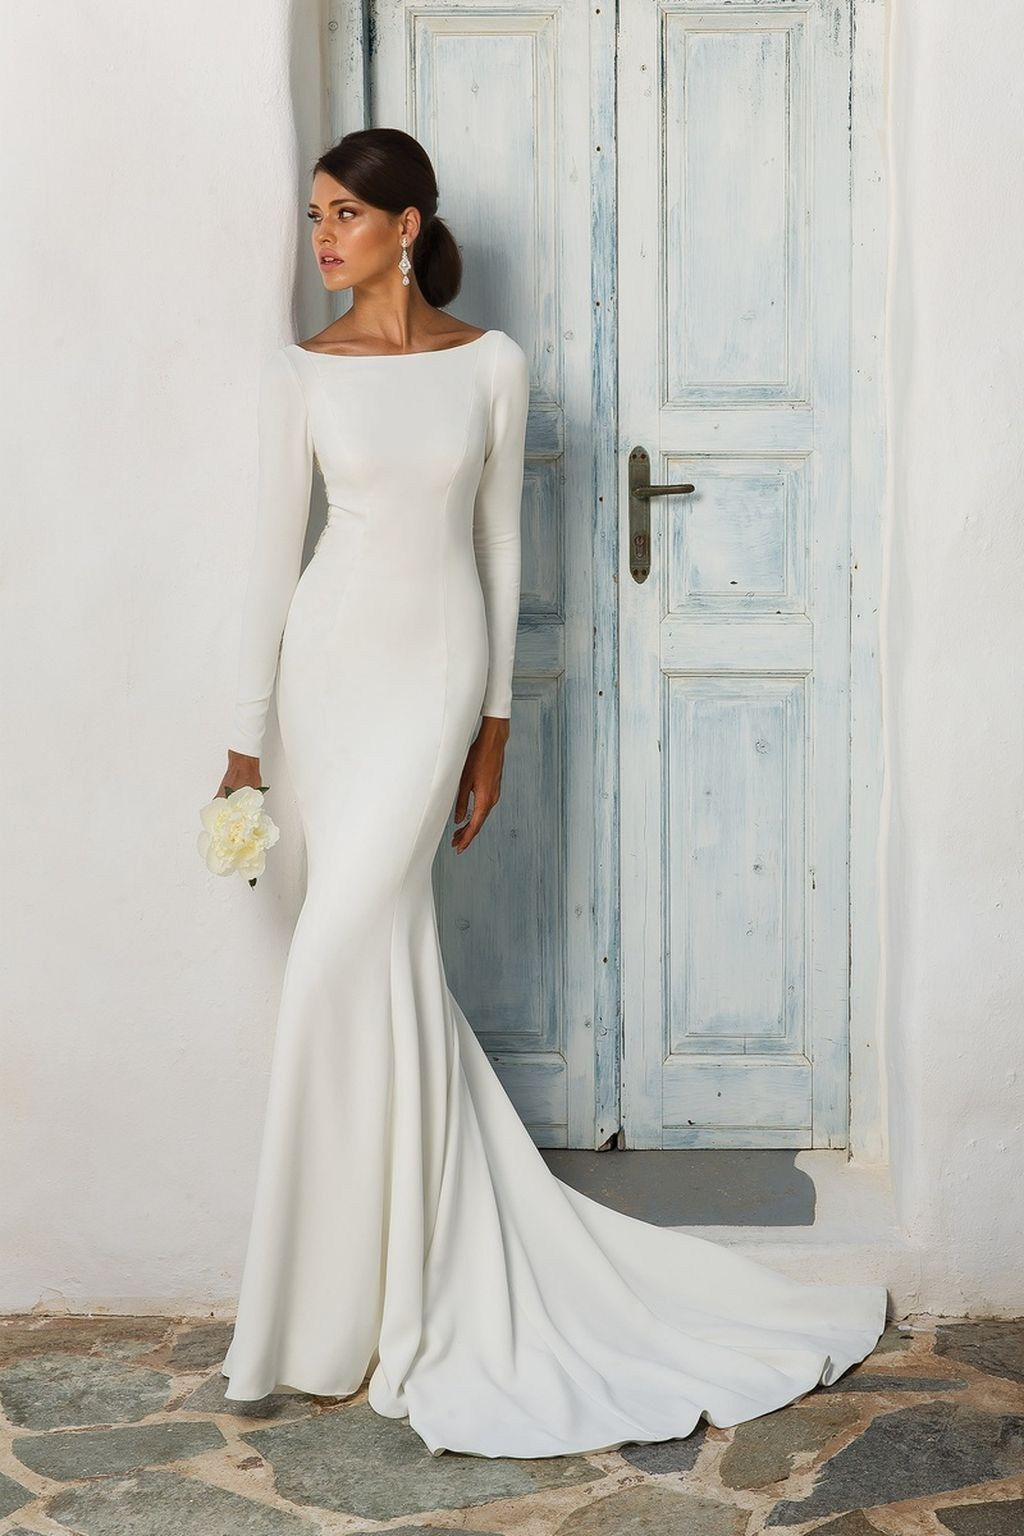 Simple long sleeves wedding dress #weddingdress #weddinggown #bridedress